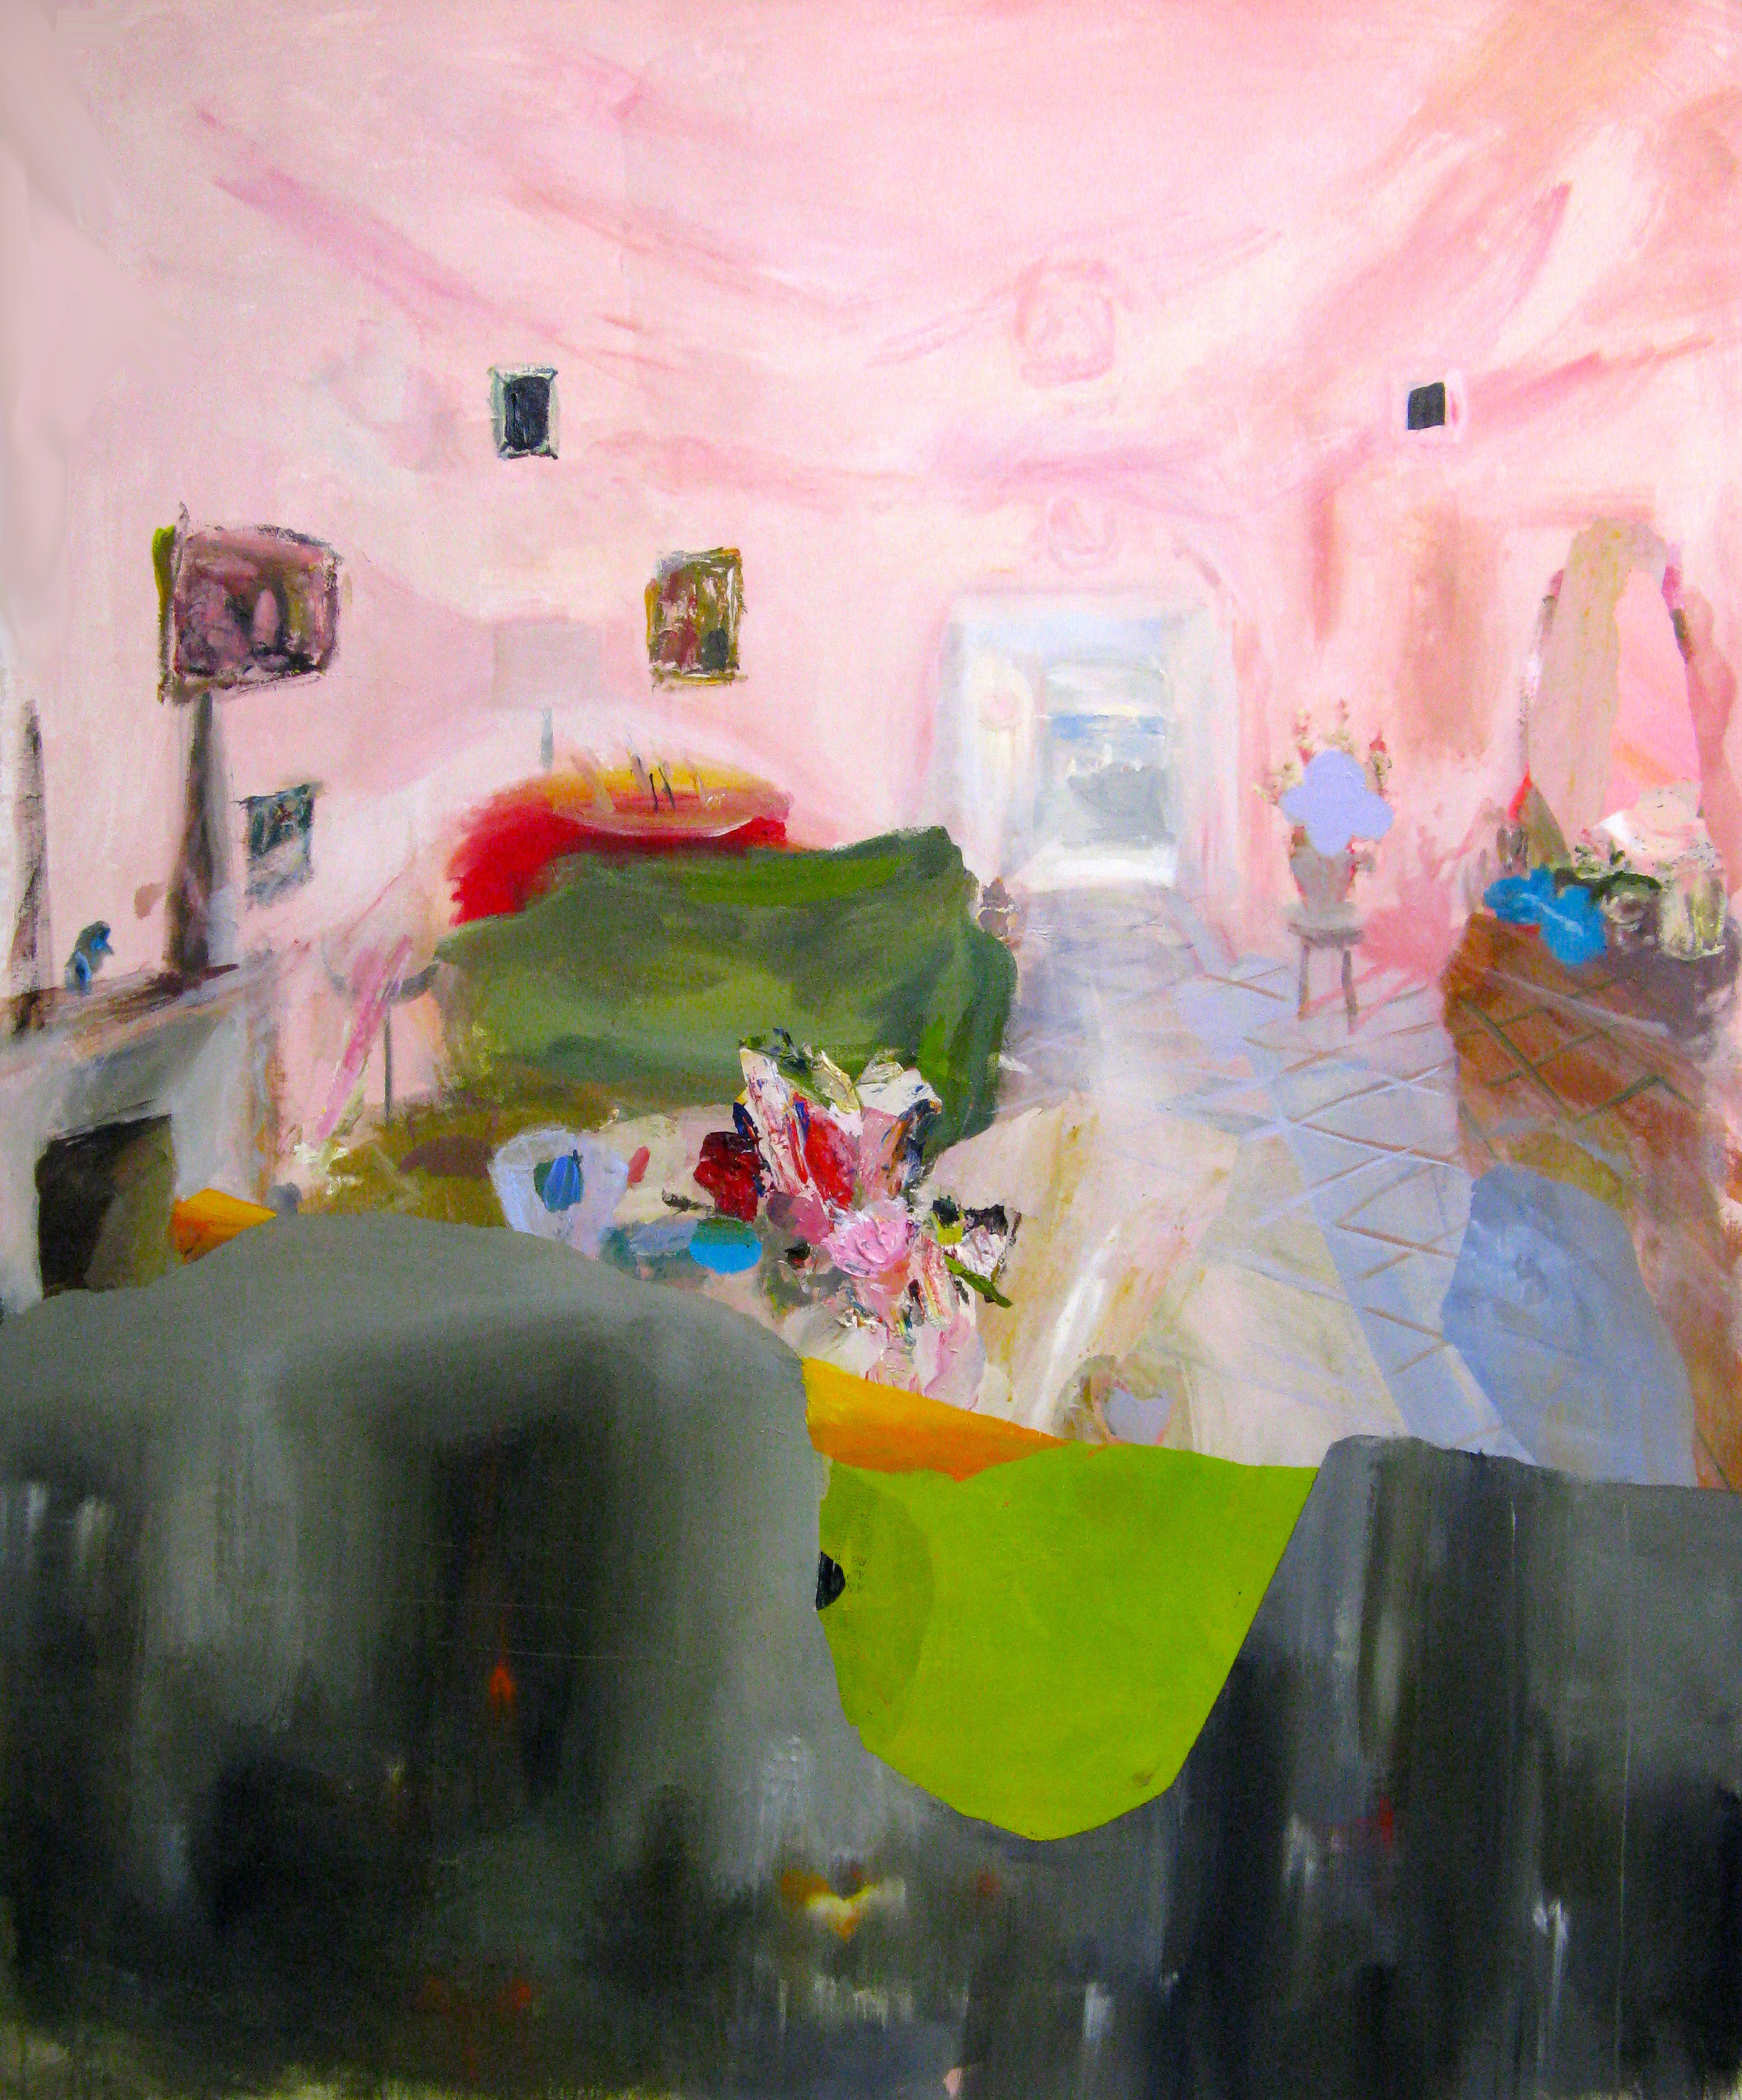 Judith Simonian, Fleshy Pink Room, 2014, acrylic on canvas, 72 x 60.25 inches (courtesy of Edward Thorp Gallery)